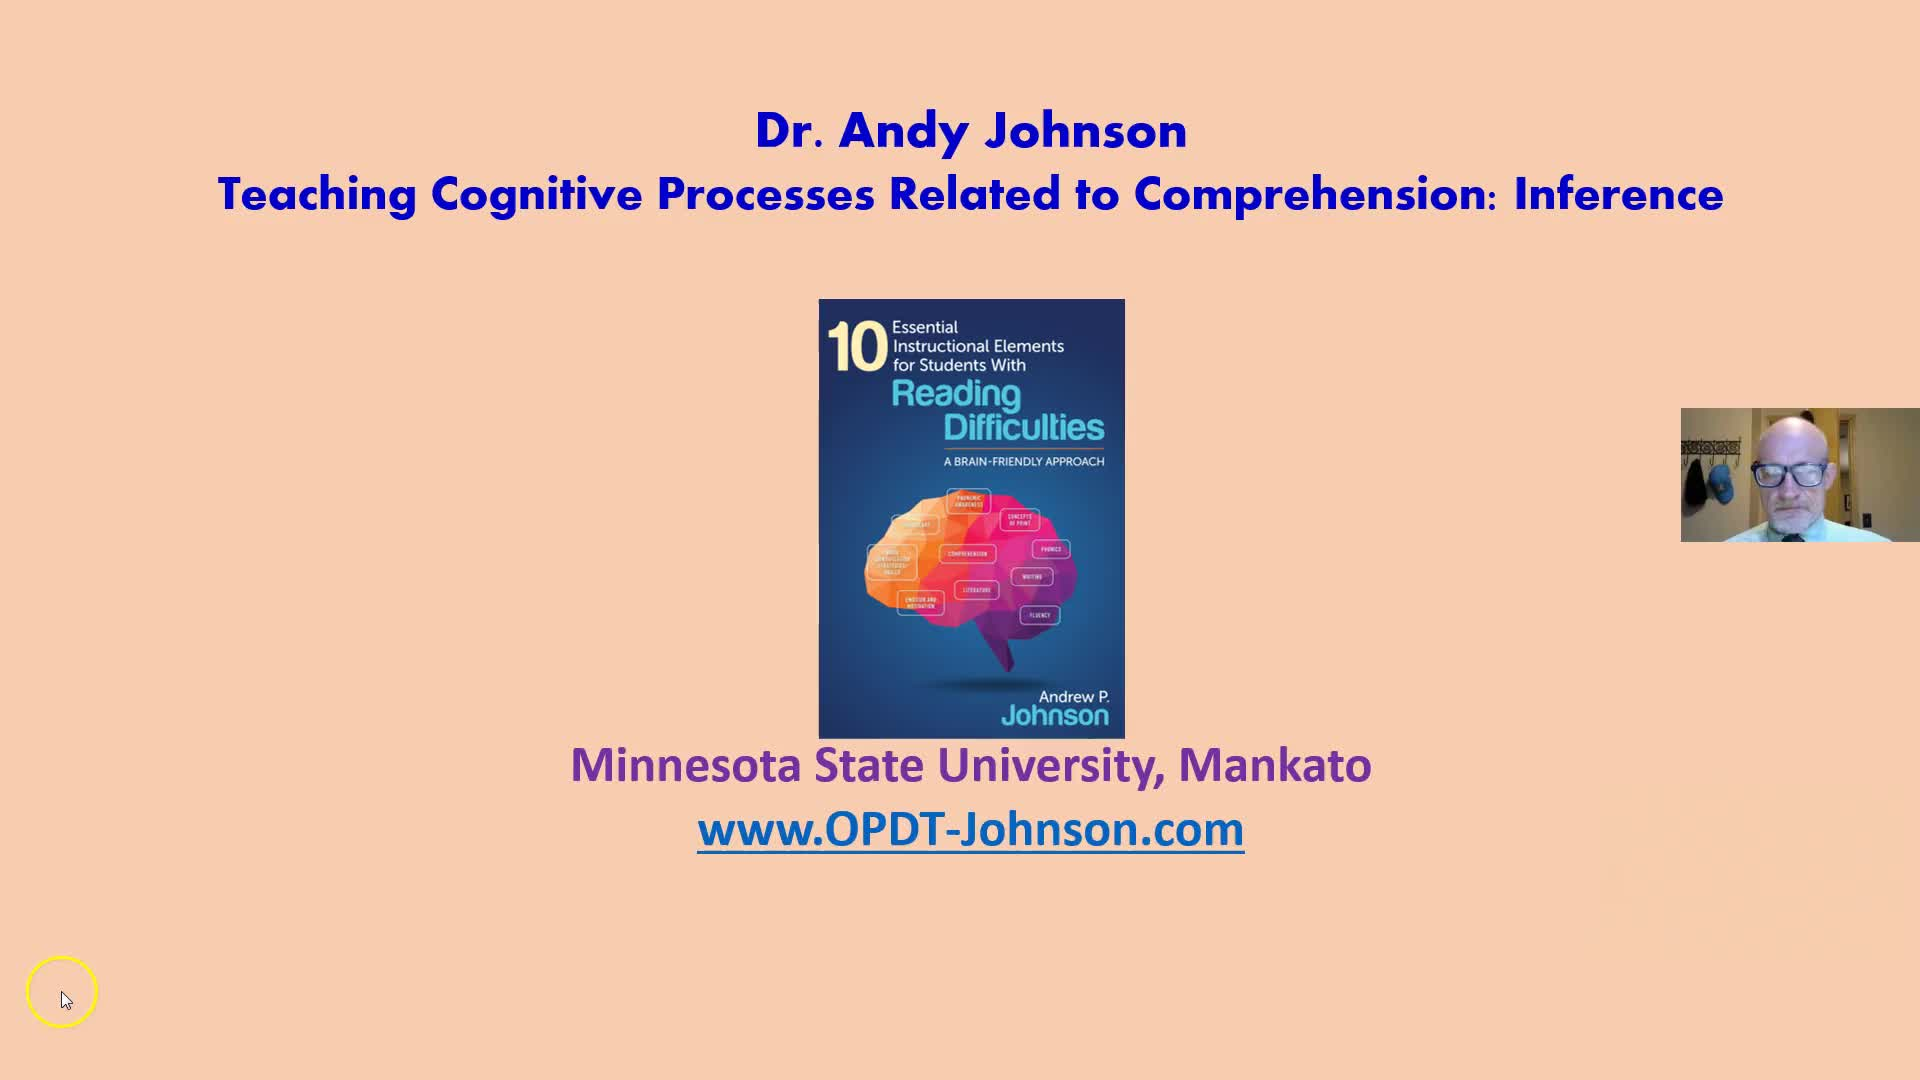 TEACHING COGNITIVE PROCESSES RELATED TO COMPREHENSION: COMPREHENSION